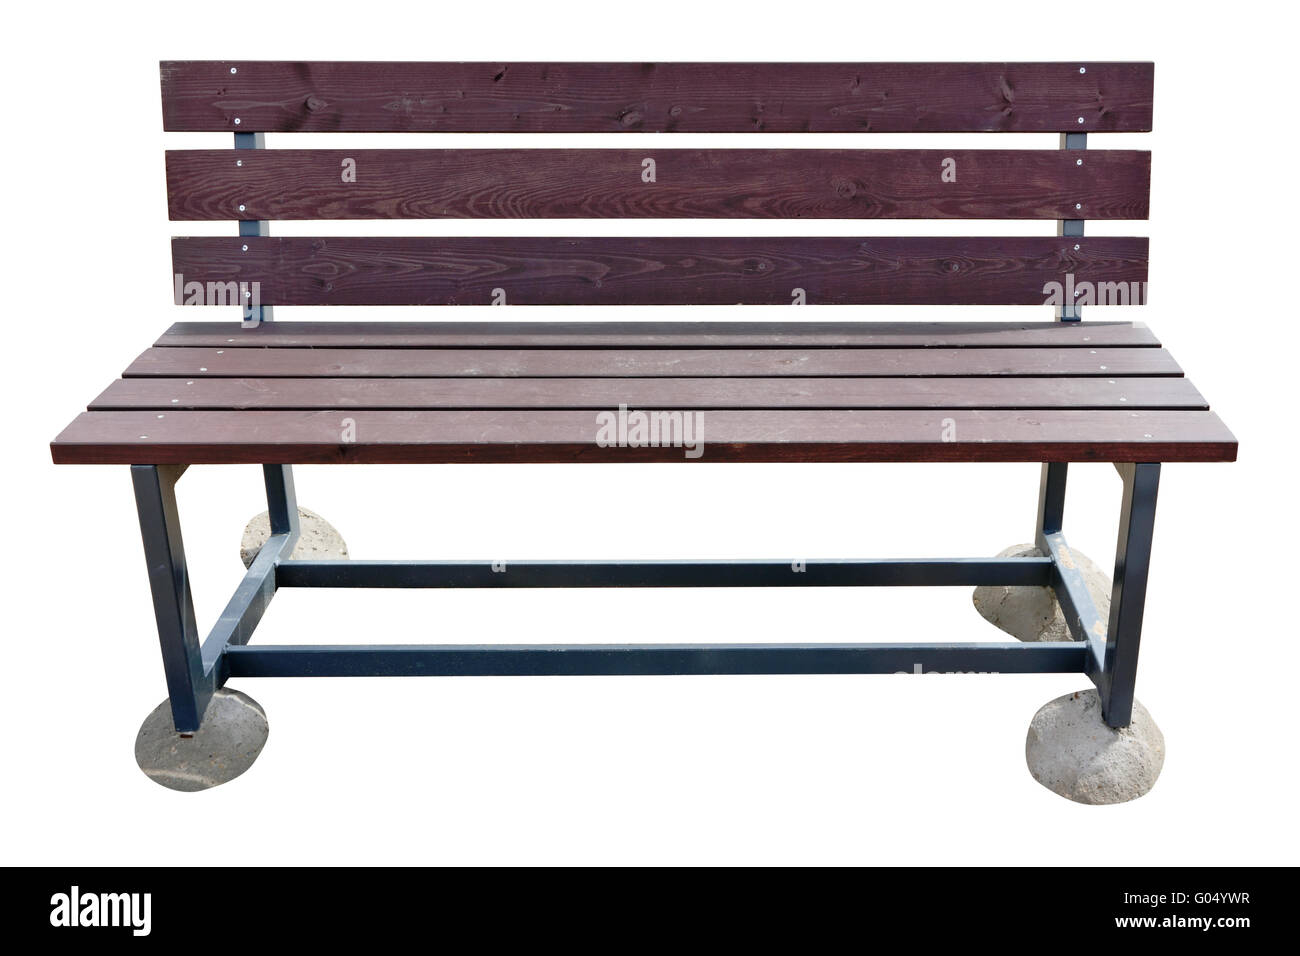 69aa71f34 Wooden beach bench with a metal anti vandal framework. Not to plunge into  sand, each leg of a bench is on a concrete pad. Isolat